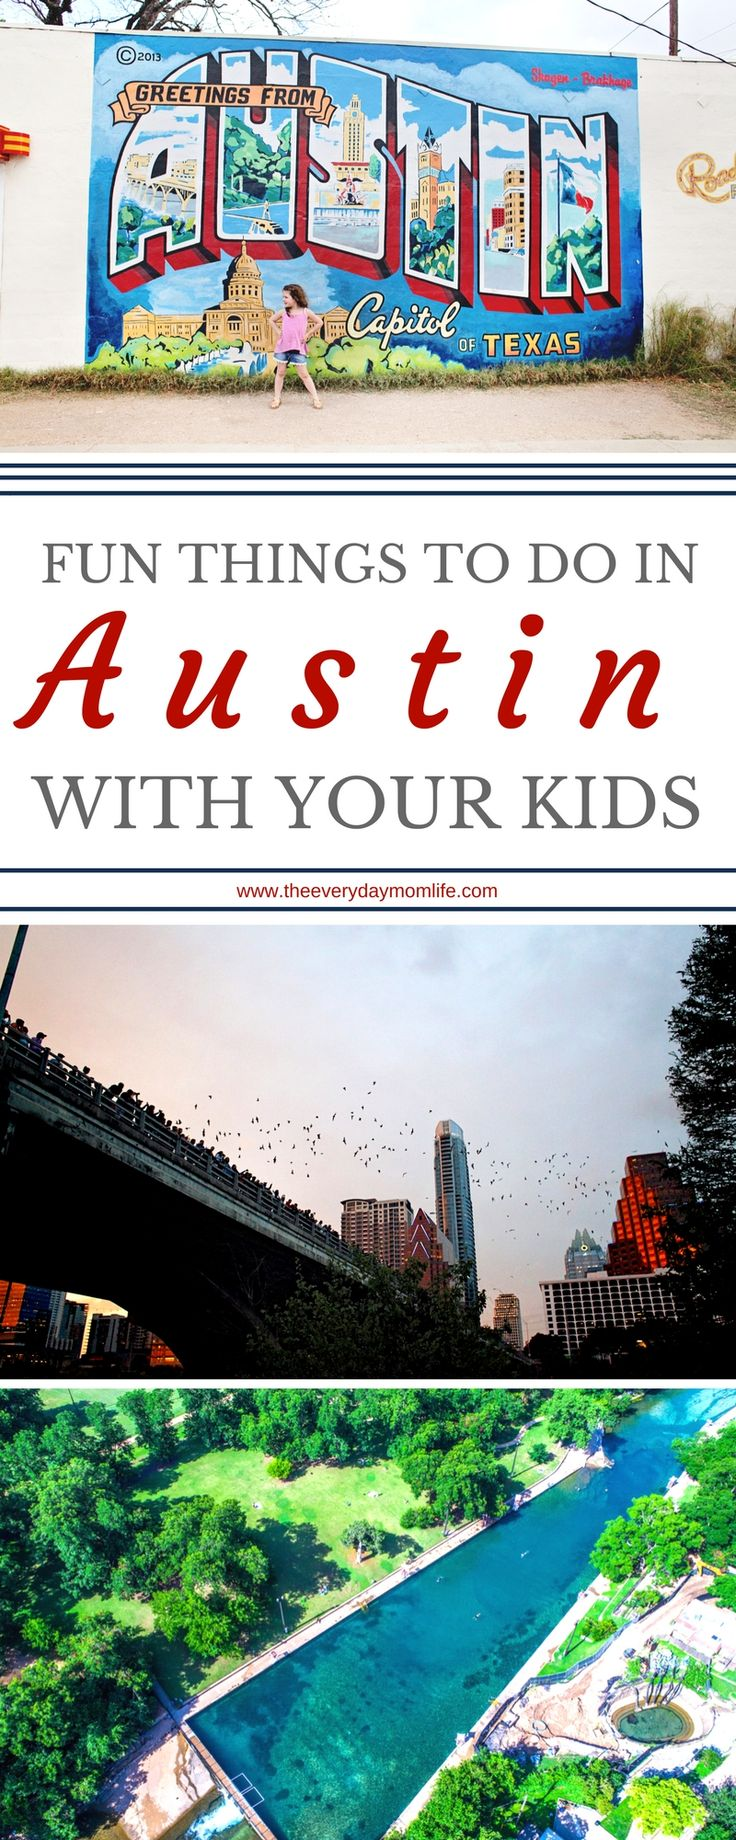 10 Things To Do In Austin With Kids #travel #traveltips #familytravel #familyvacation